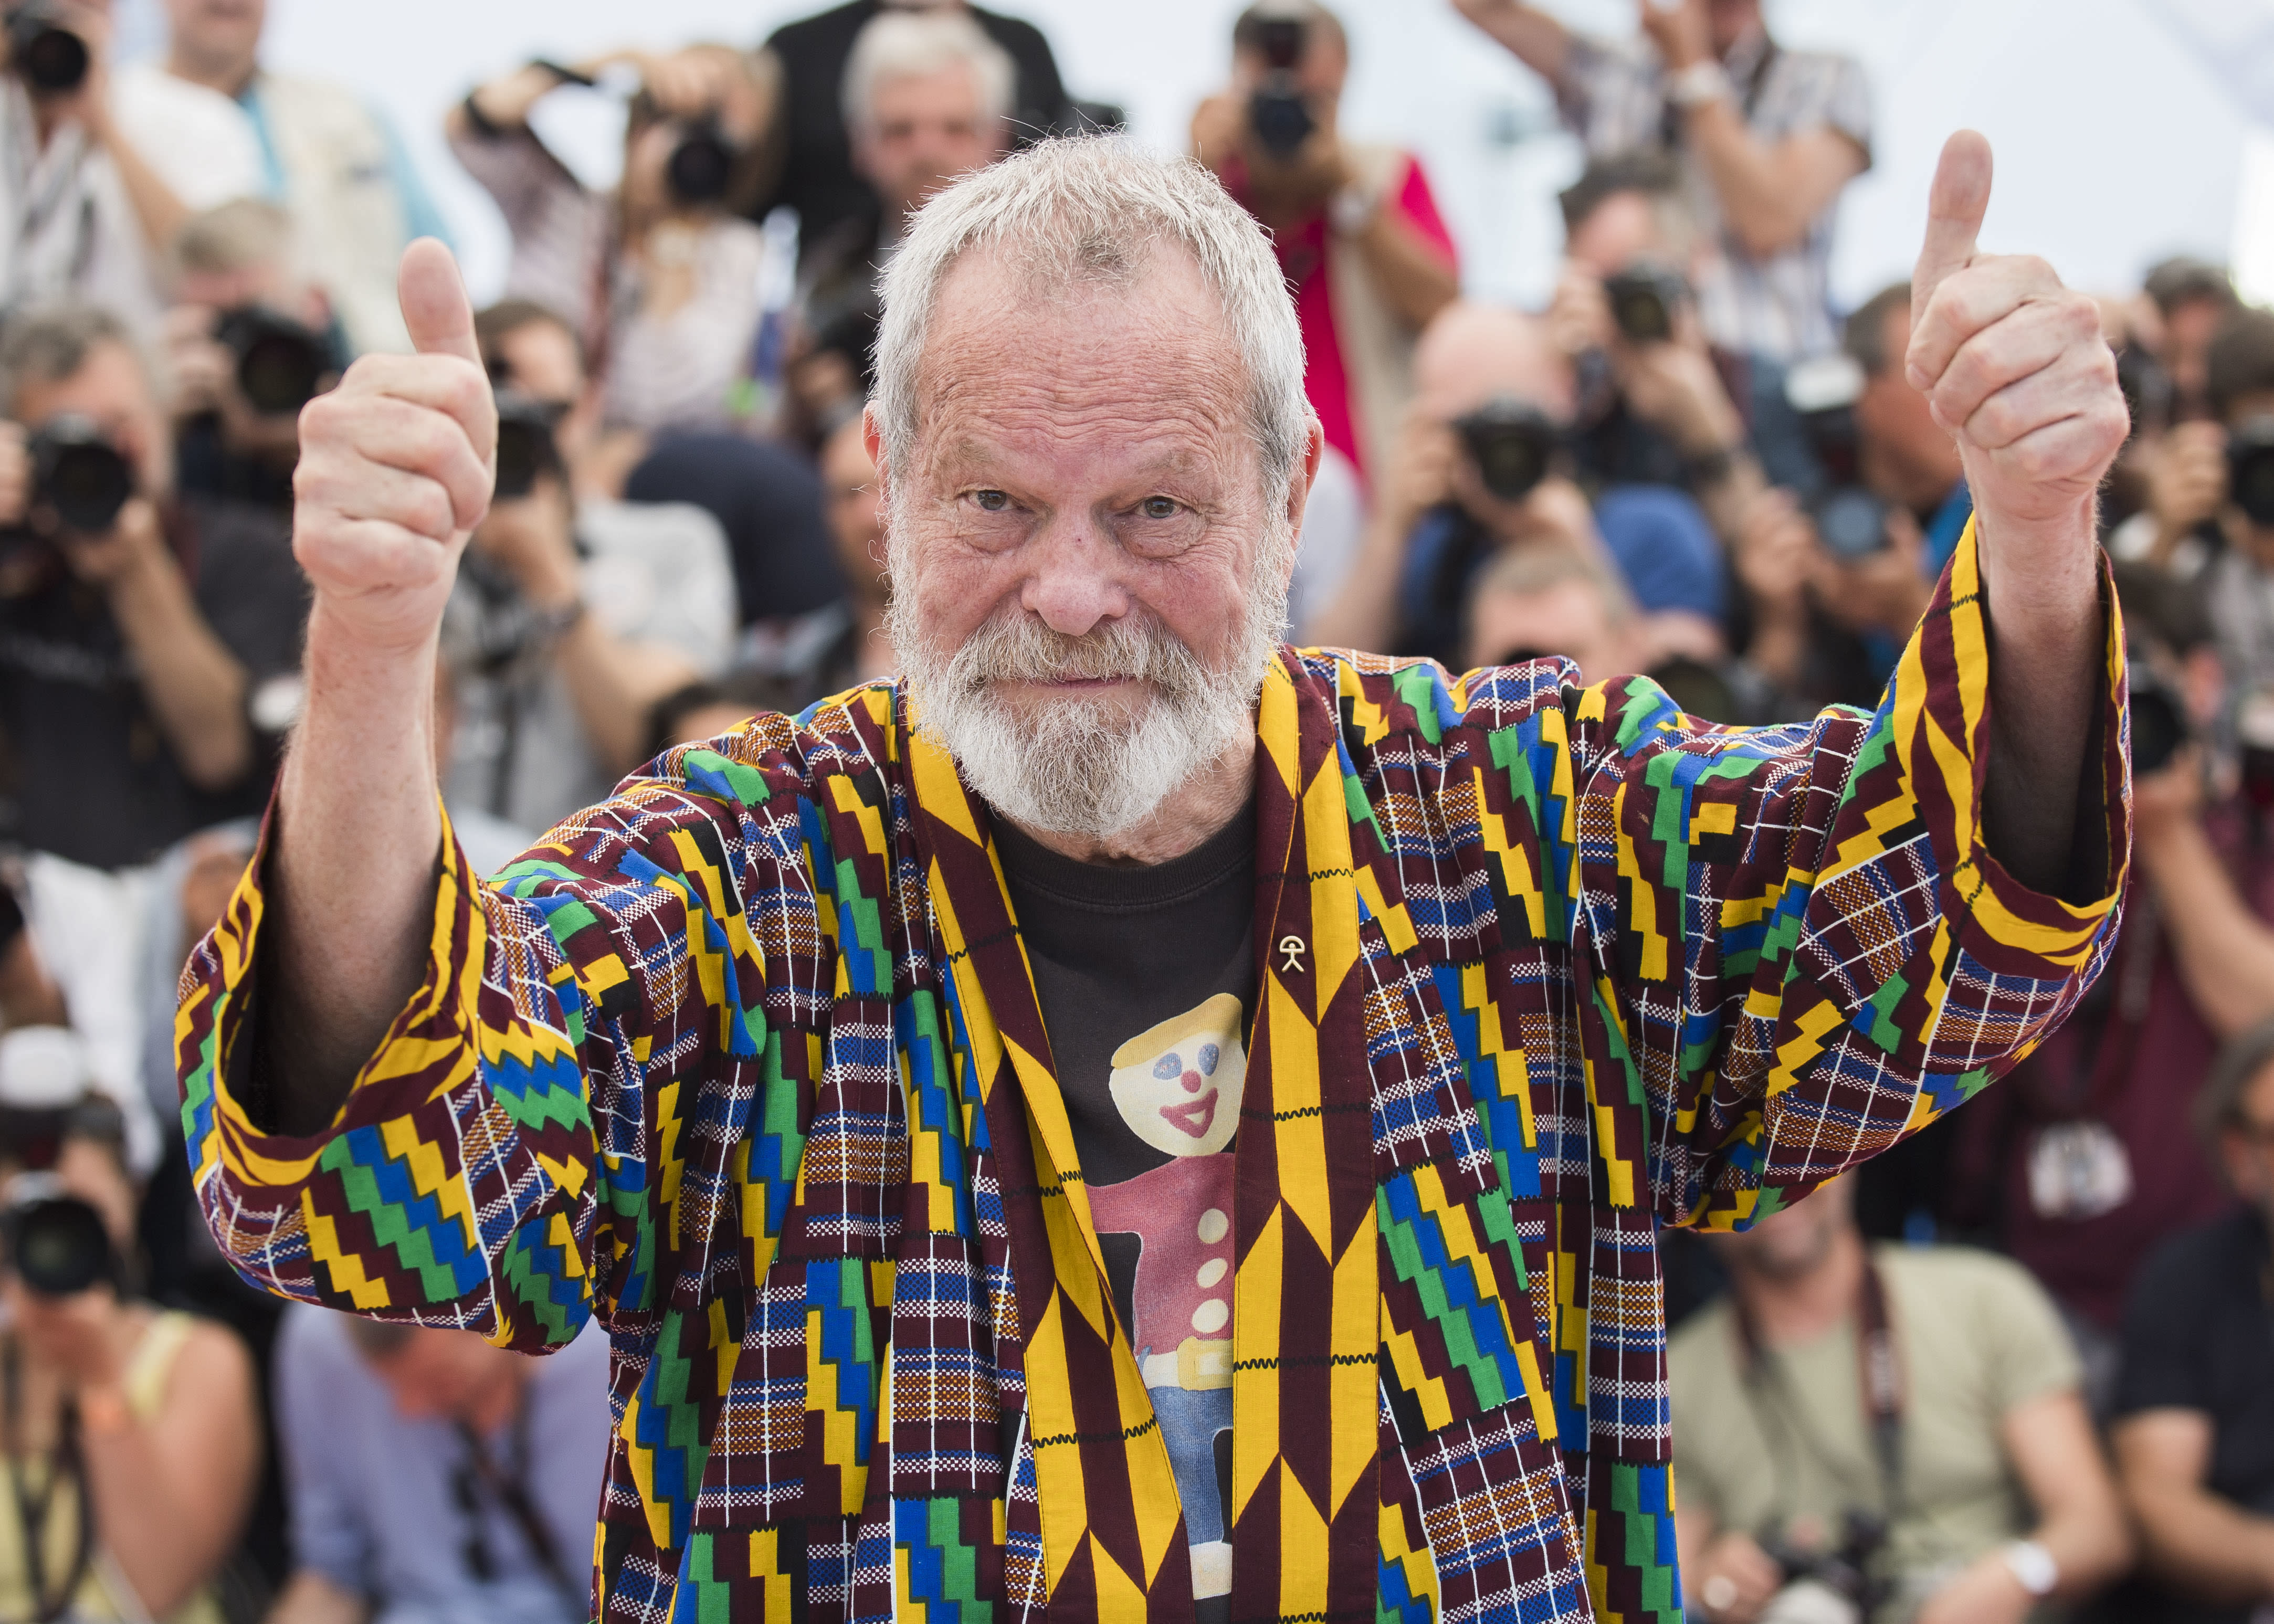 Terry Gilliam tears into 'Black Panther', calling Marvel movie's message 'bulls**t'